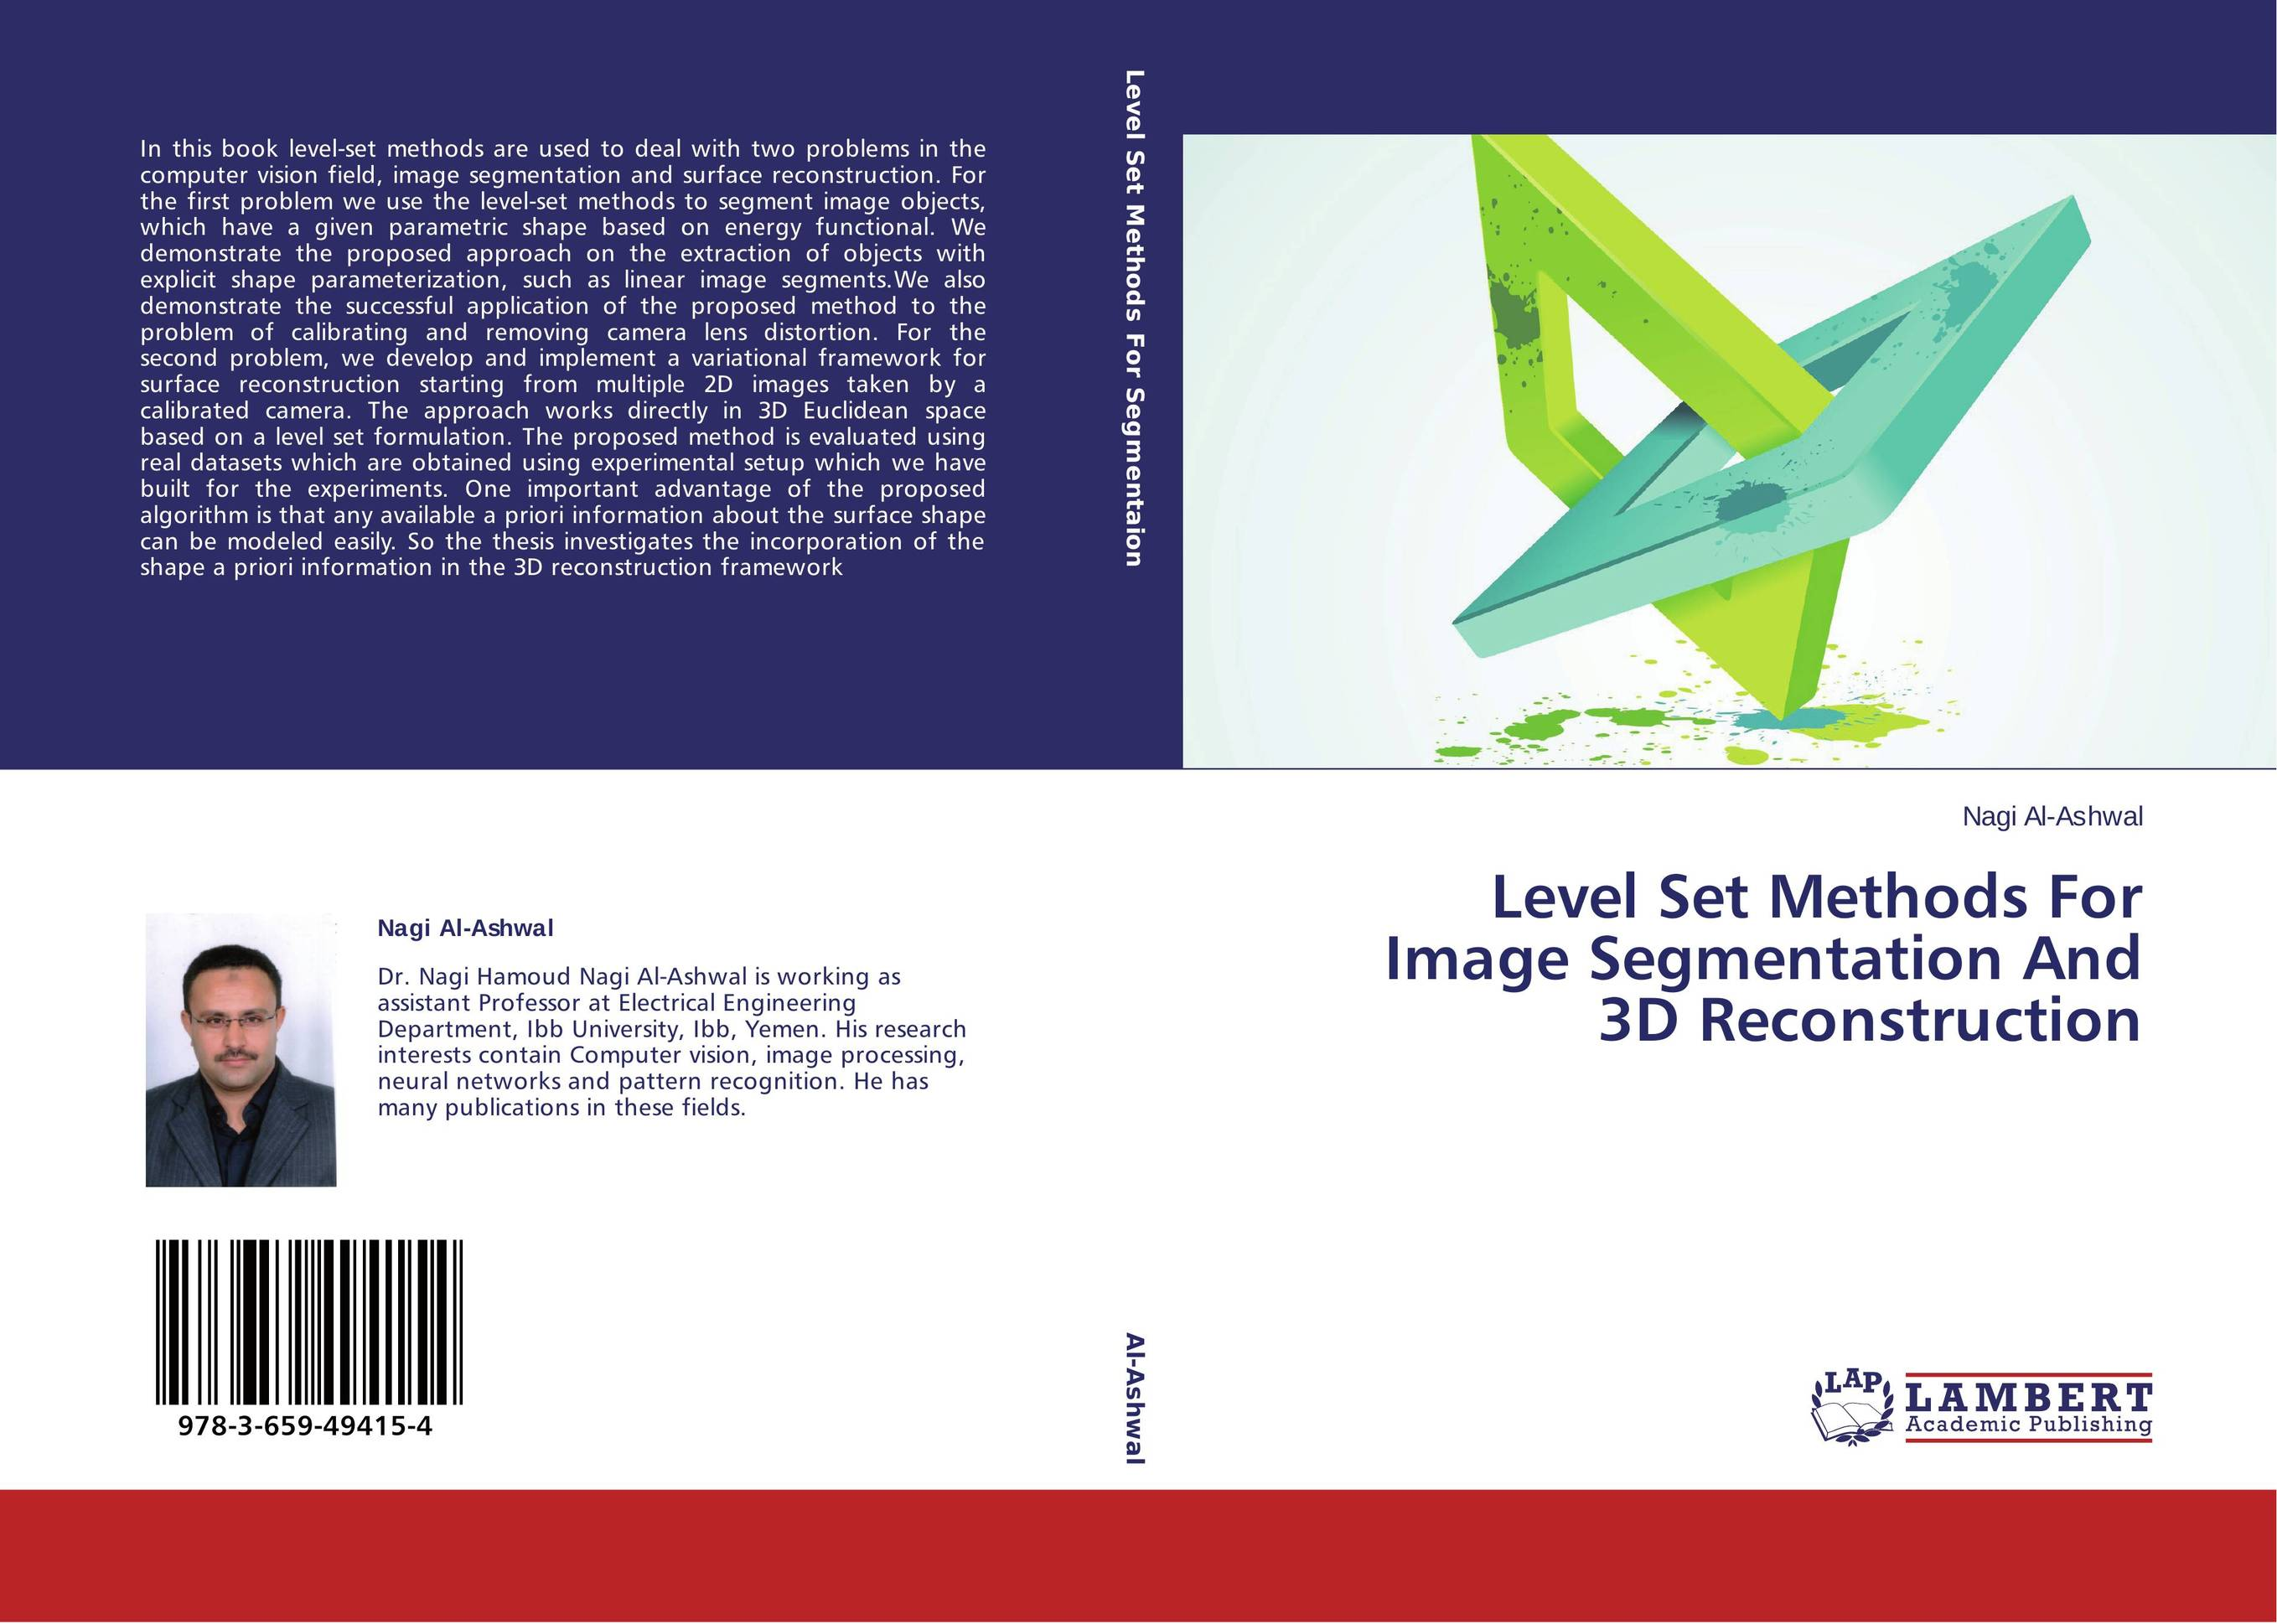 level set methd thesis Image segmentation using active contour model and level set method applied to detect oil spills the level set method is to consider the evolving interface c.